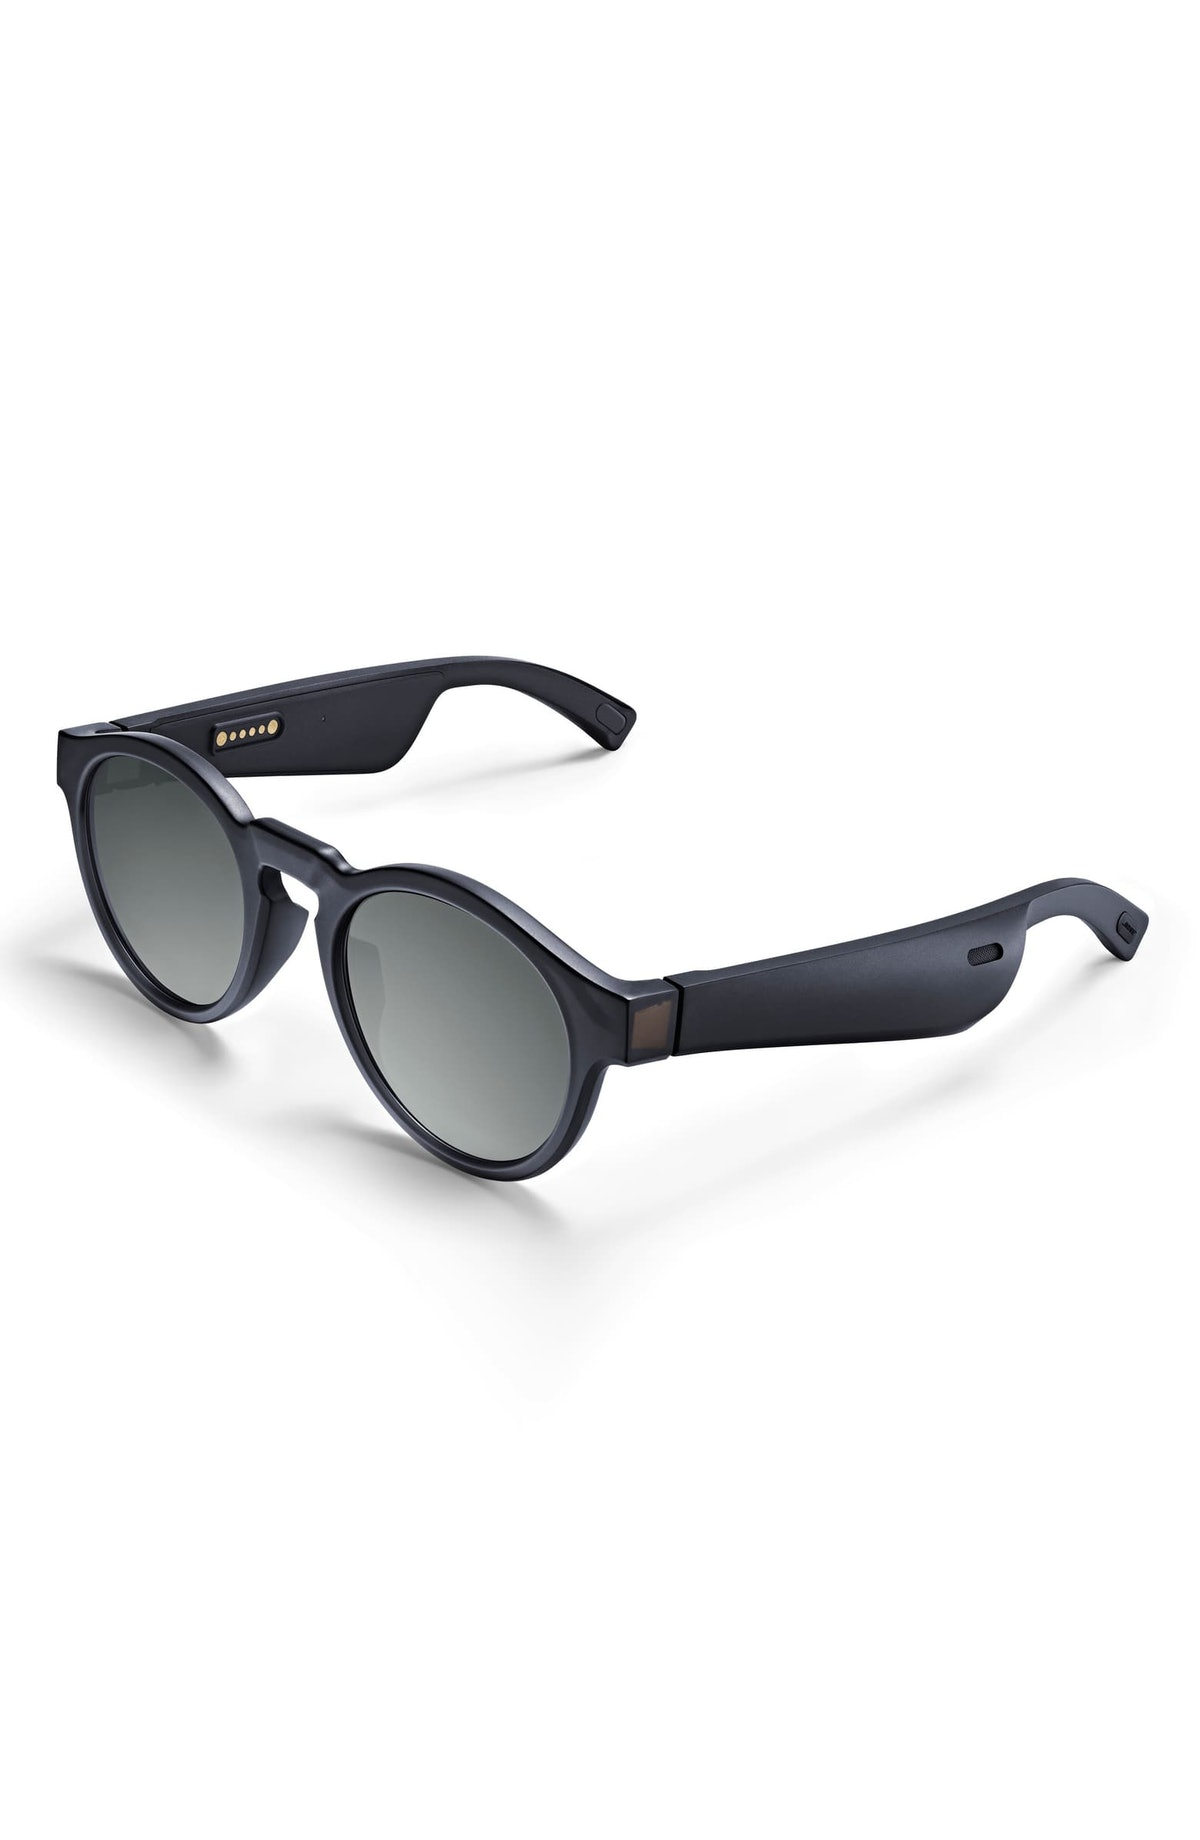 Sunglasses on sale at Nordstrom